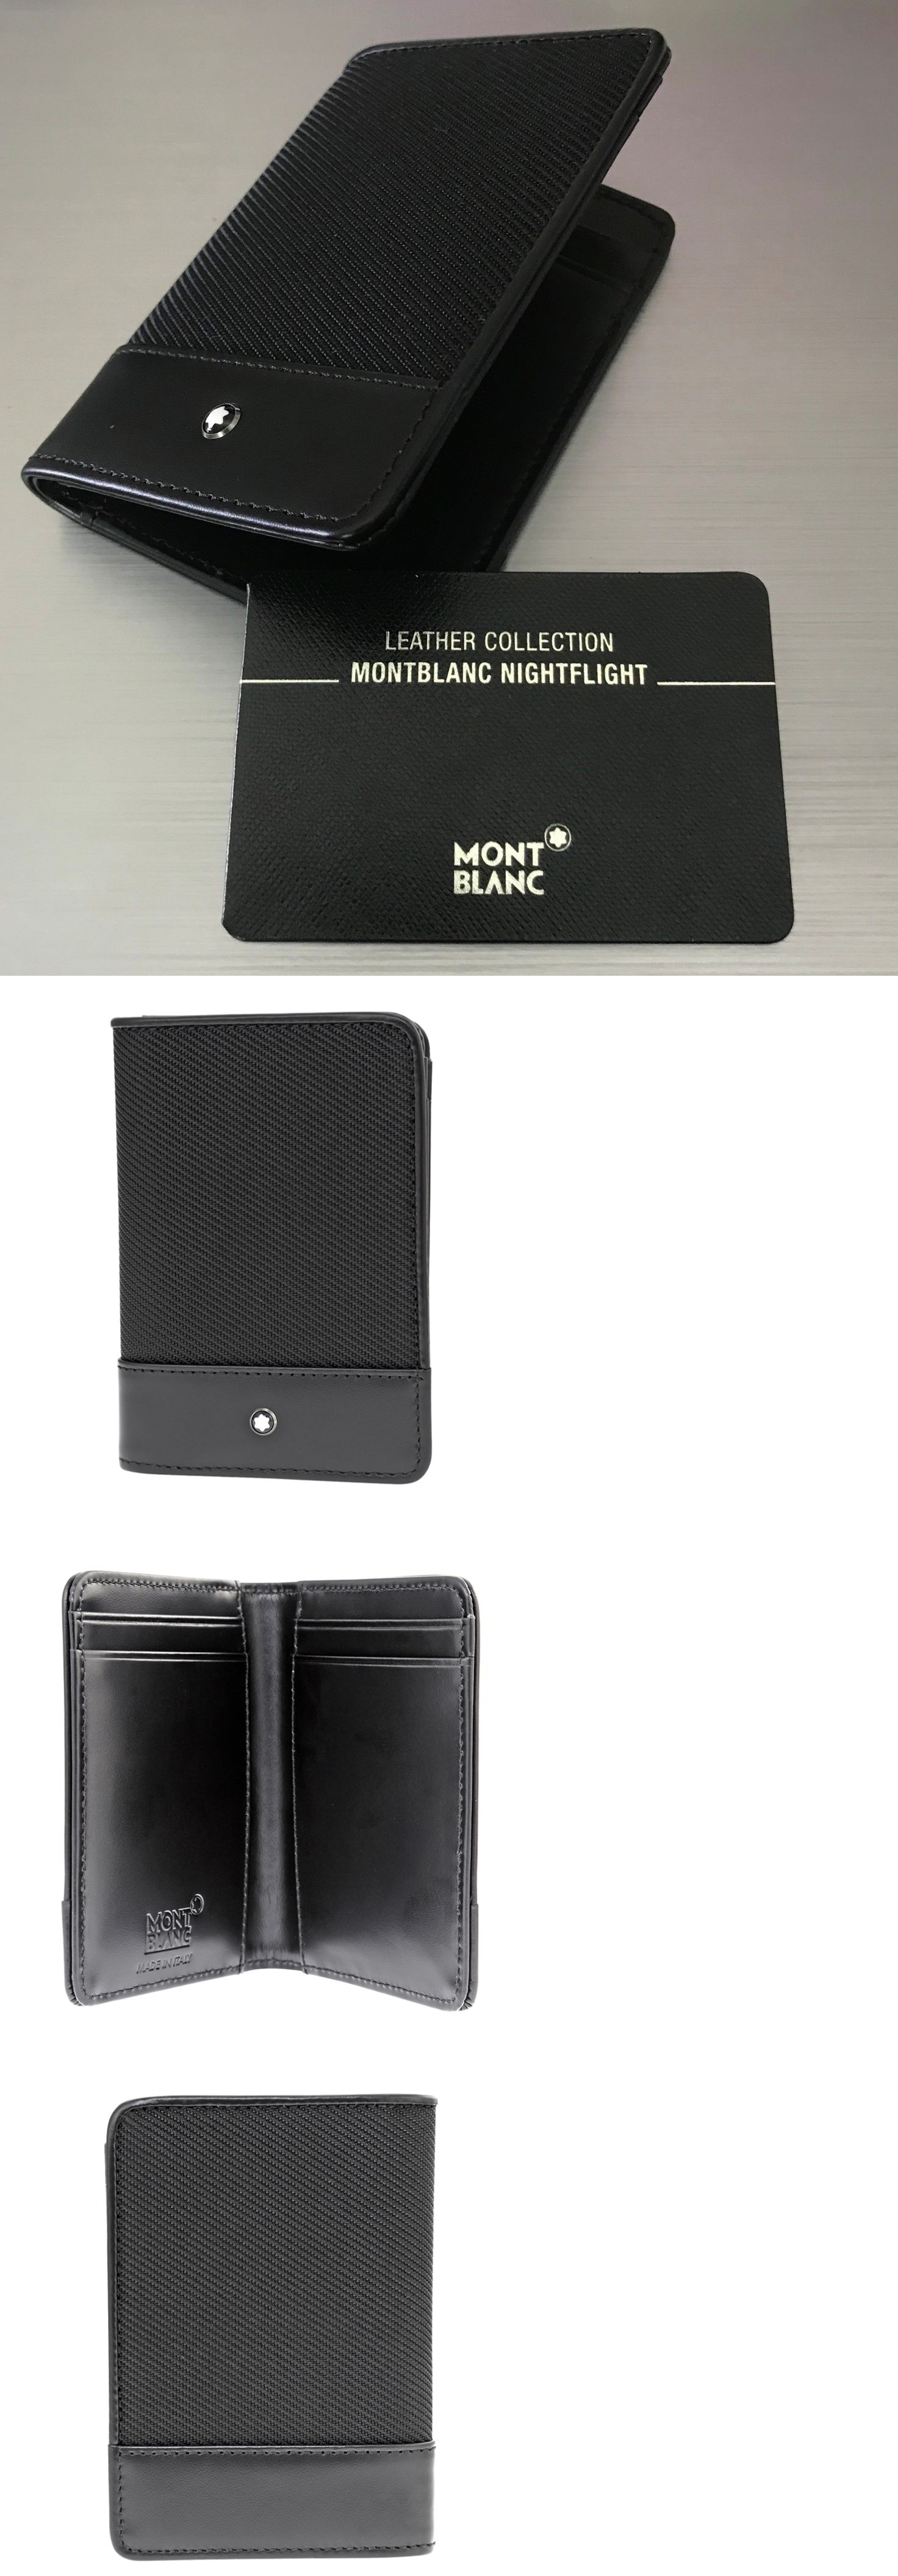 9250b4e05 Other Mens ID and Doc Holders 169272  100% Genuine Card Holder Montblanc  Nightflight Black